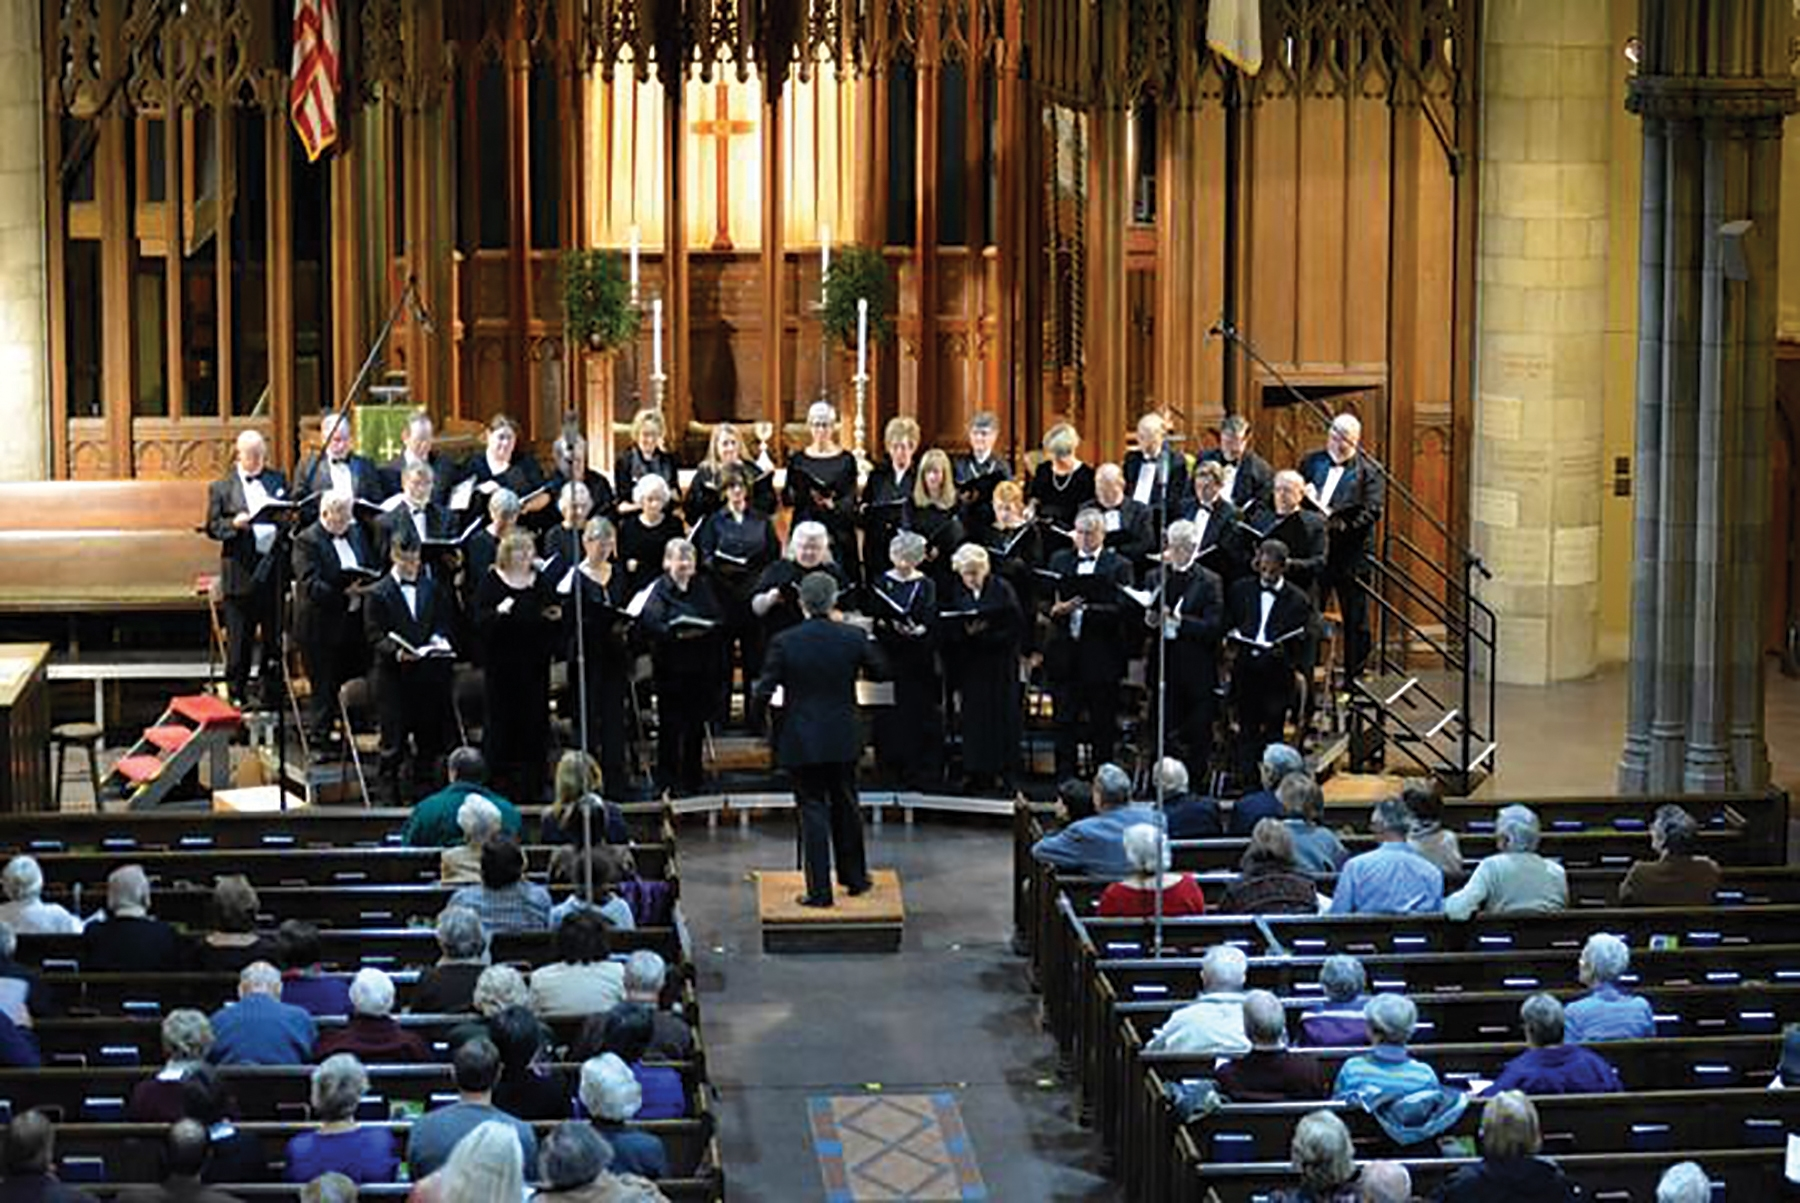 b4dcd4635609c212f765_Photo_1_-_Allen_Artz_creates_music_with_the_Crescent_Choral_Society_in_beautiful_Crescent_Ave_Church.jpg